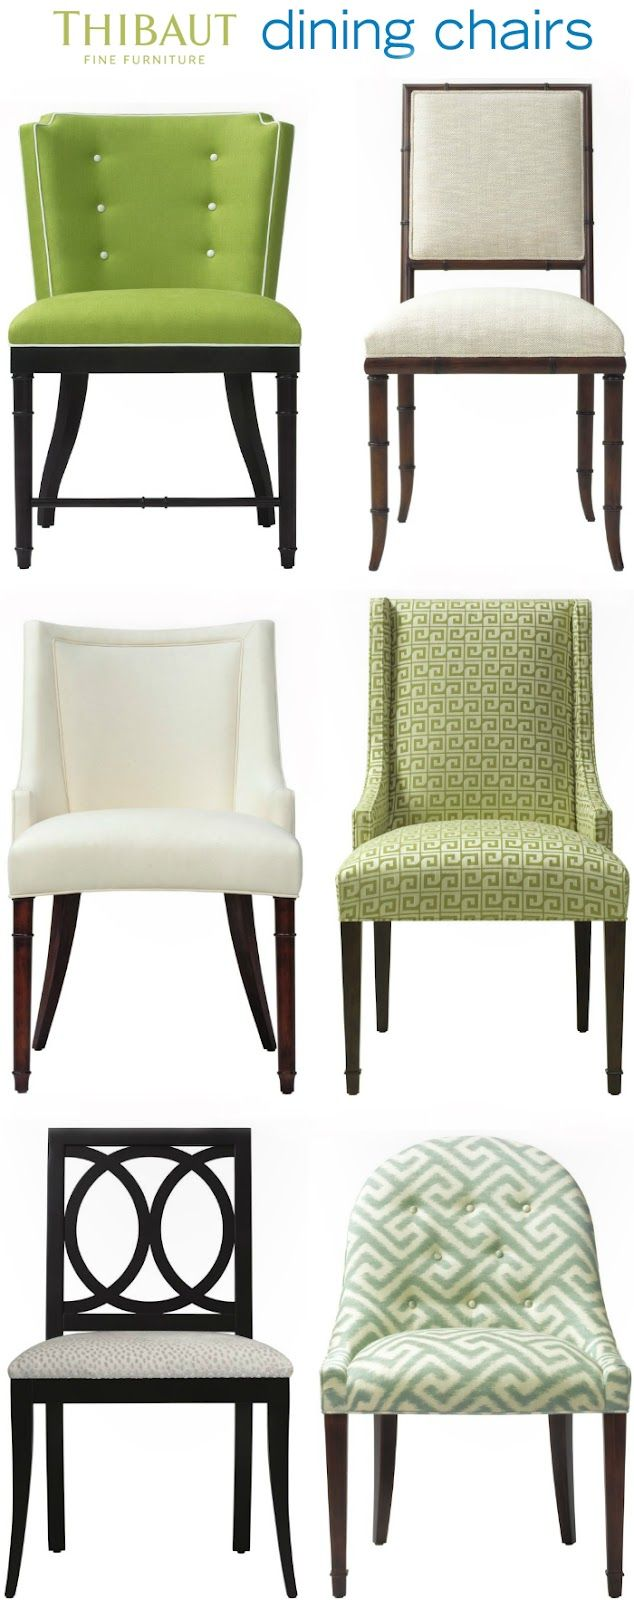 "Dining Chairs from Thibaut Furniture (© 2012); featuring the ""Stirling,"" ""Darien ..."